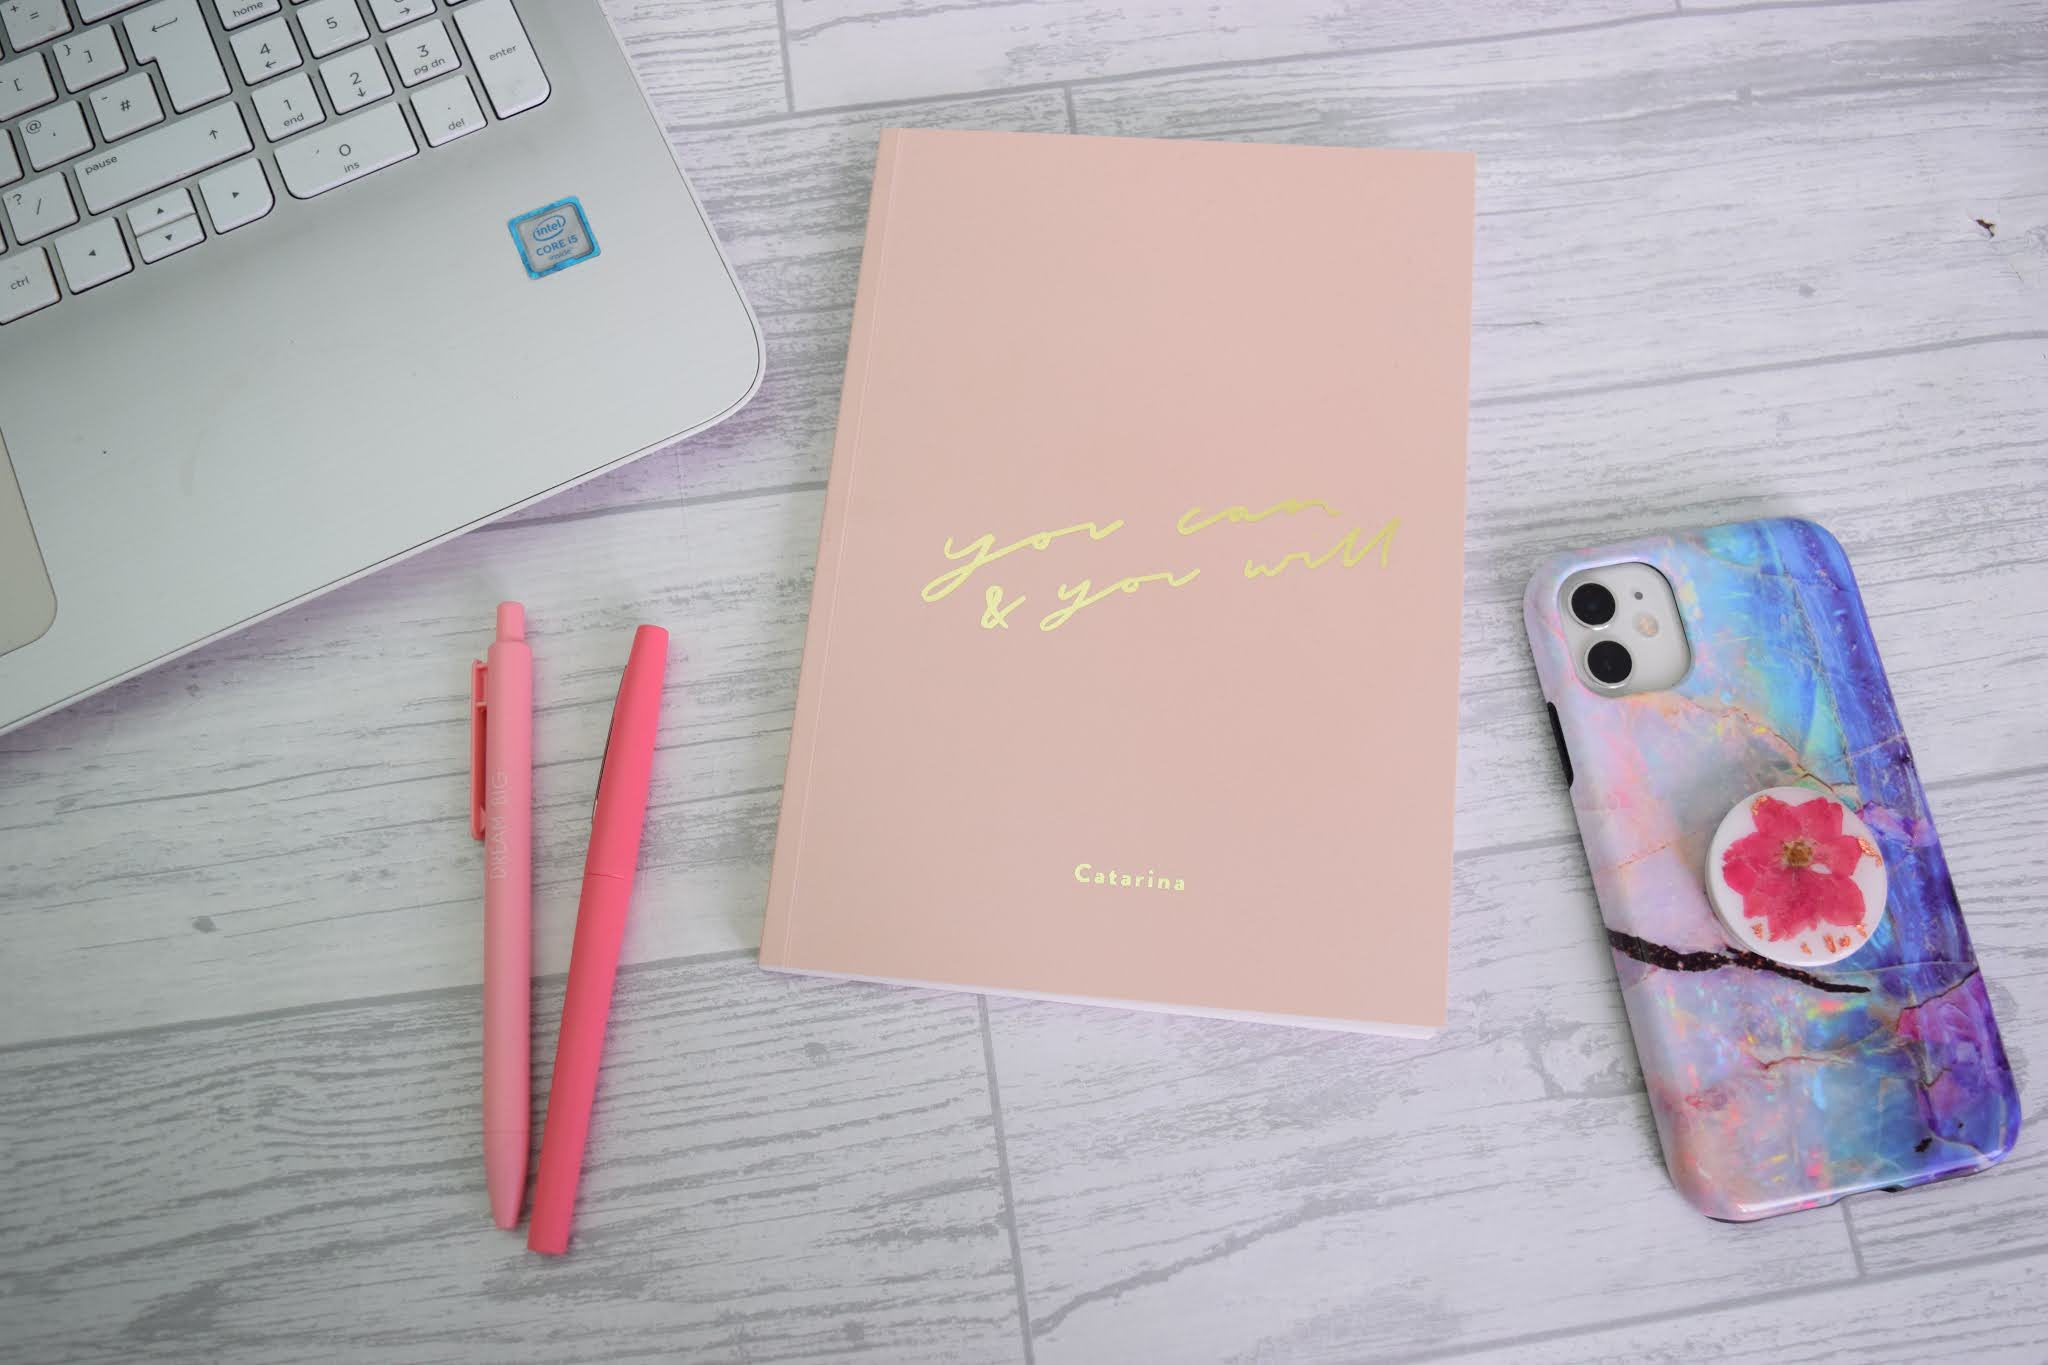 Notebook with pink pens and an iPhone